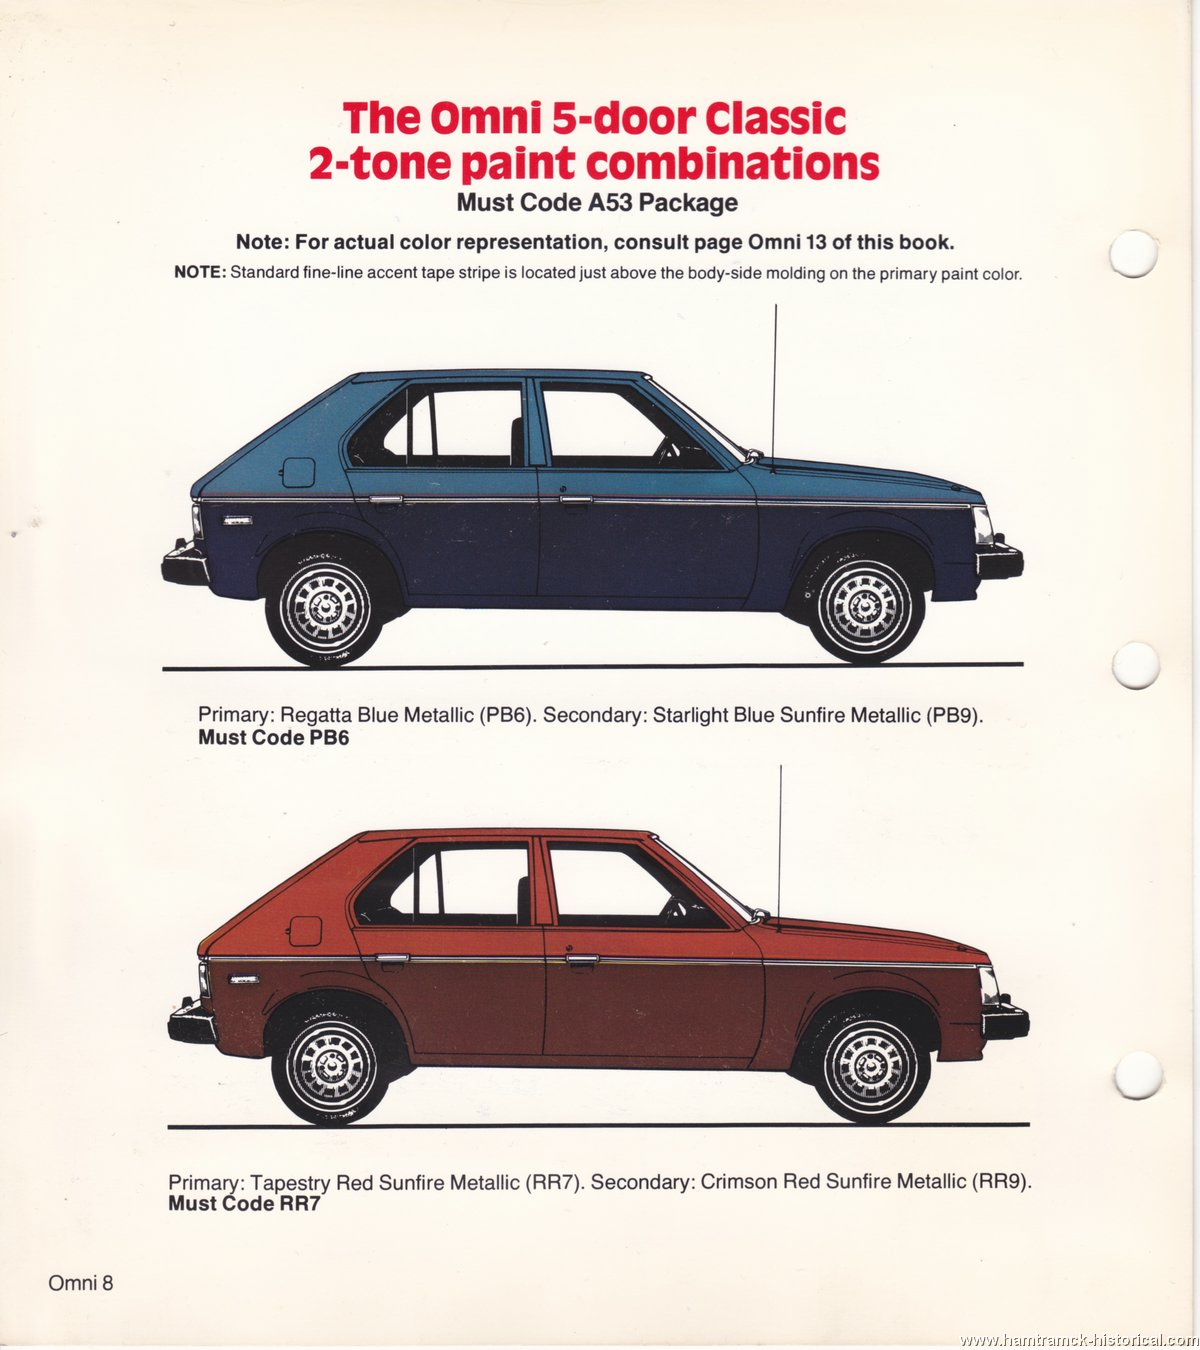 The 1970 Hamtramck Registry 1978 Dodge Color Trim Book Omni Alfa Romeo Paint Codes Image 78 0008